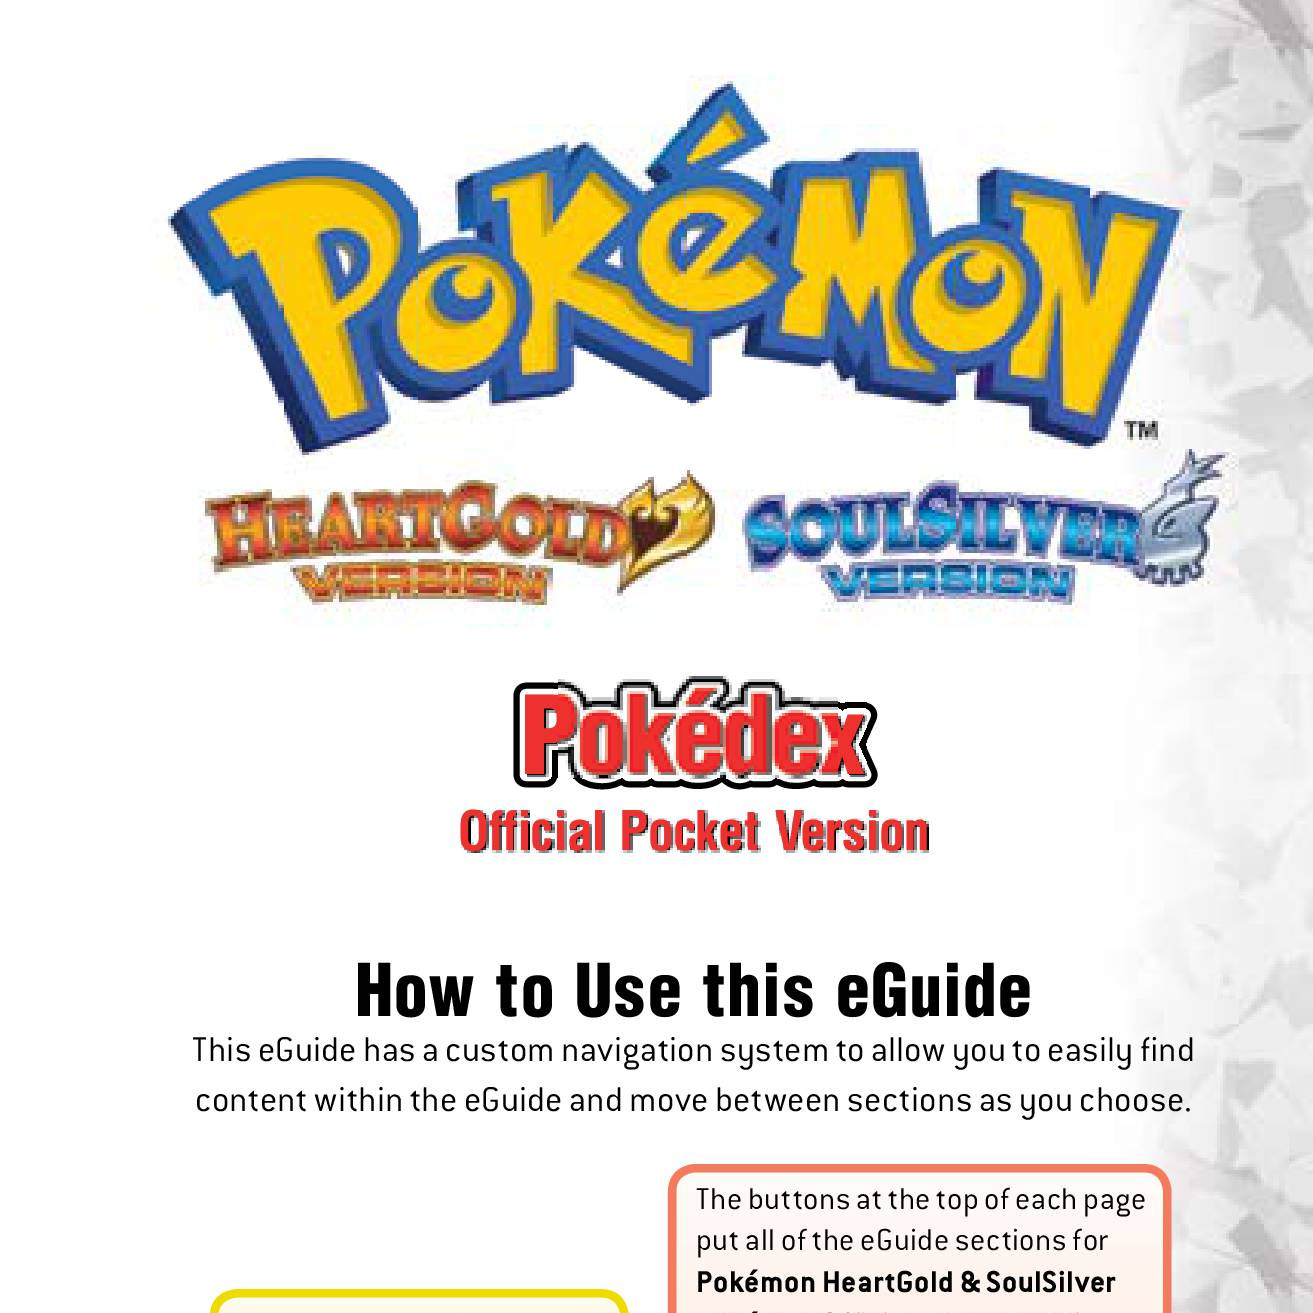 Prima 2010 Pokemon Heartgold Amp Soulsilver Pocket Pokedex Vol 3 Pdf Docdroid